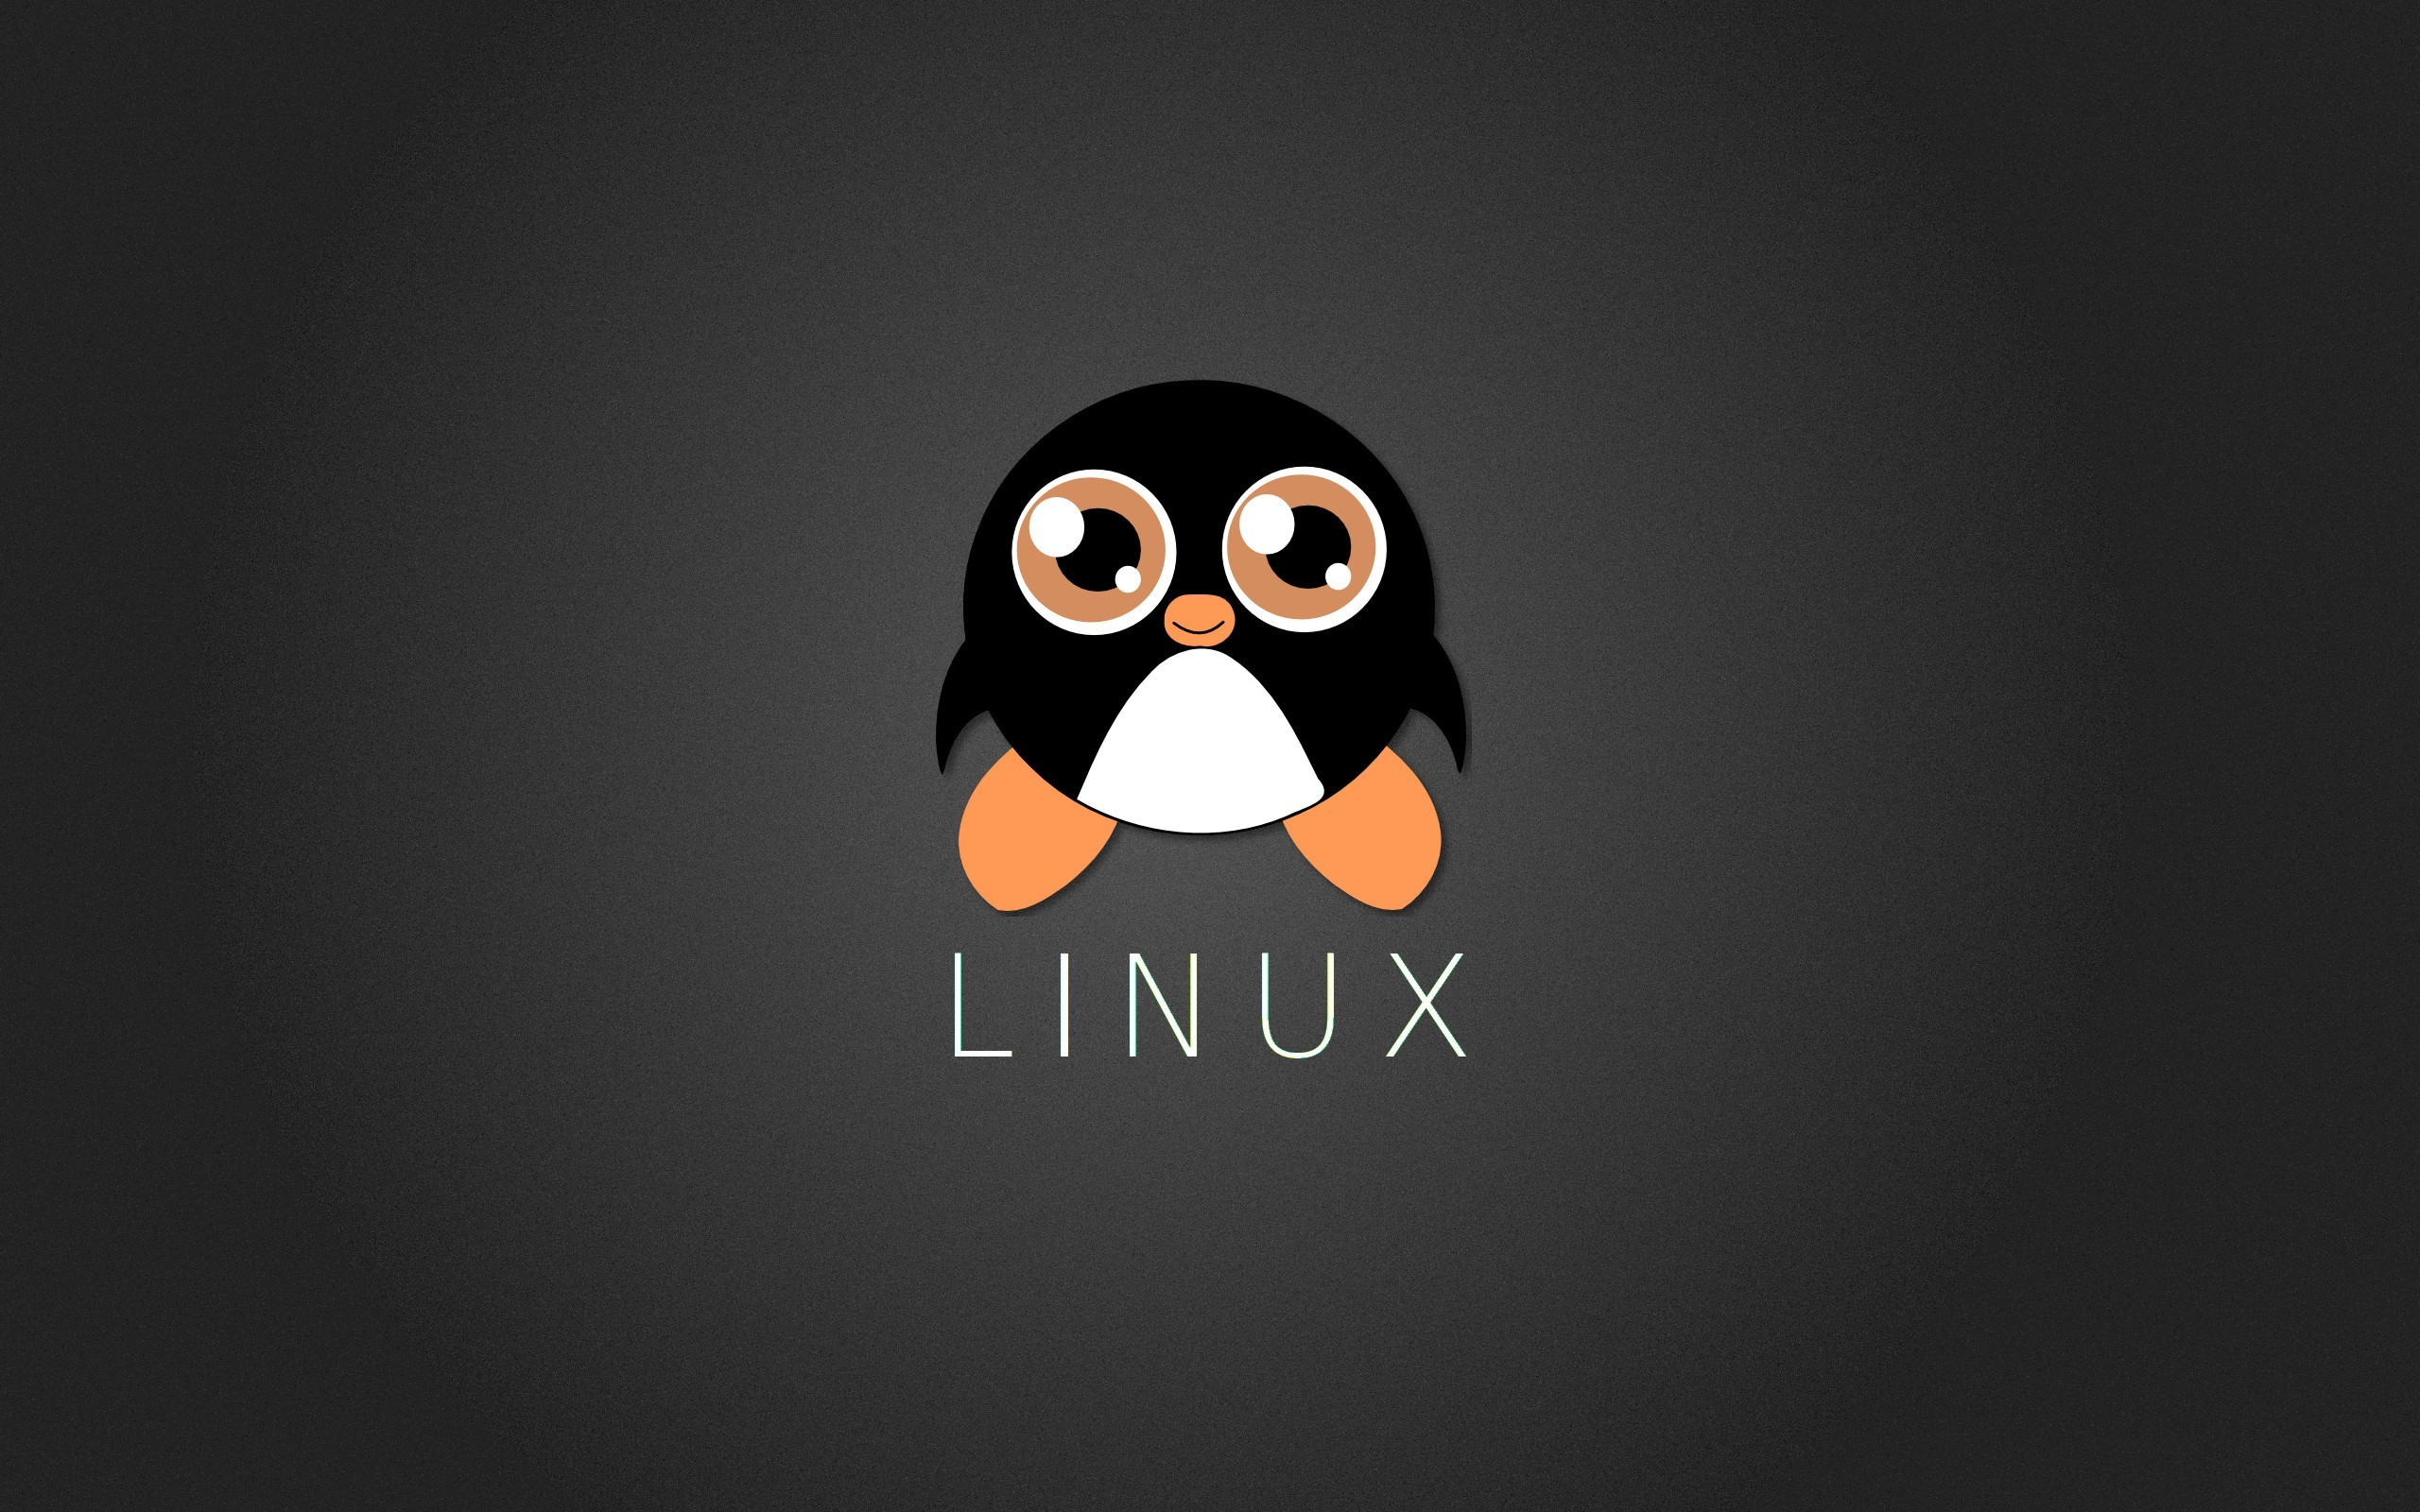 Linux Hd Wallpaper 75 Images